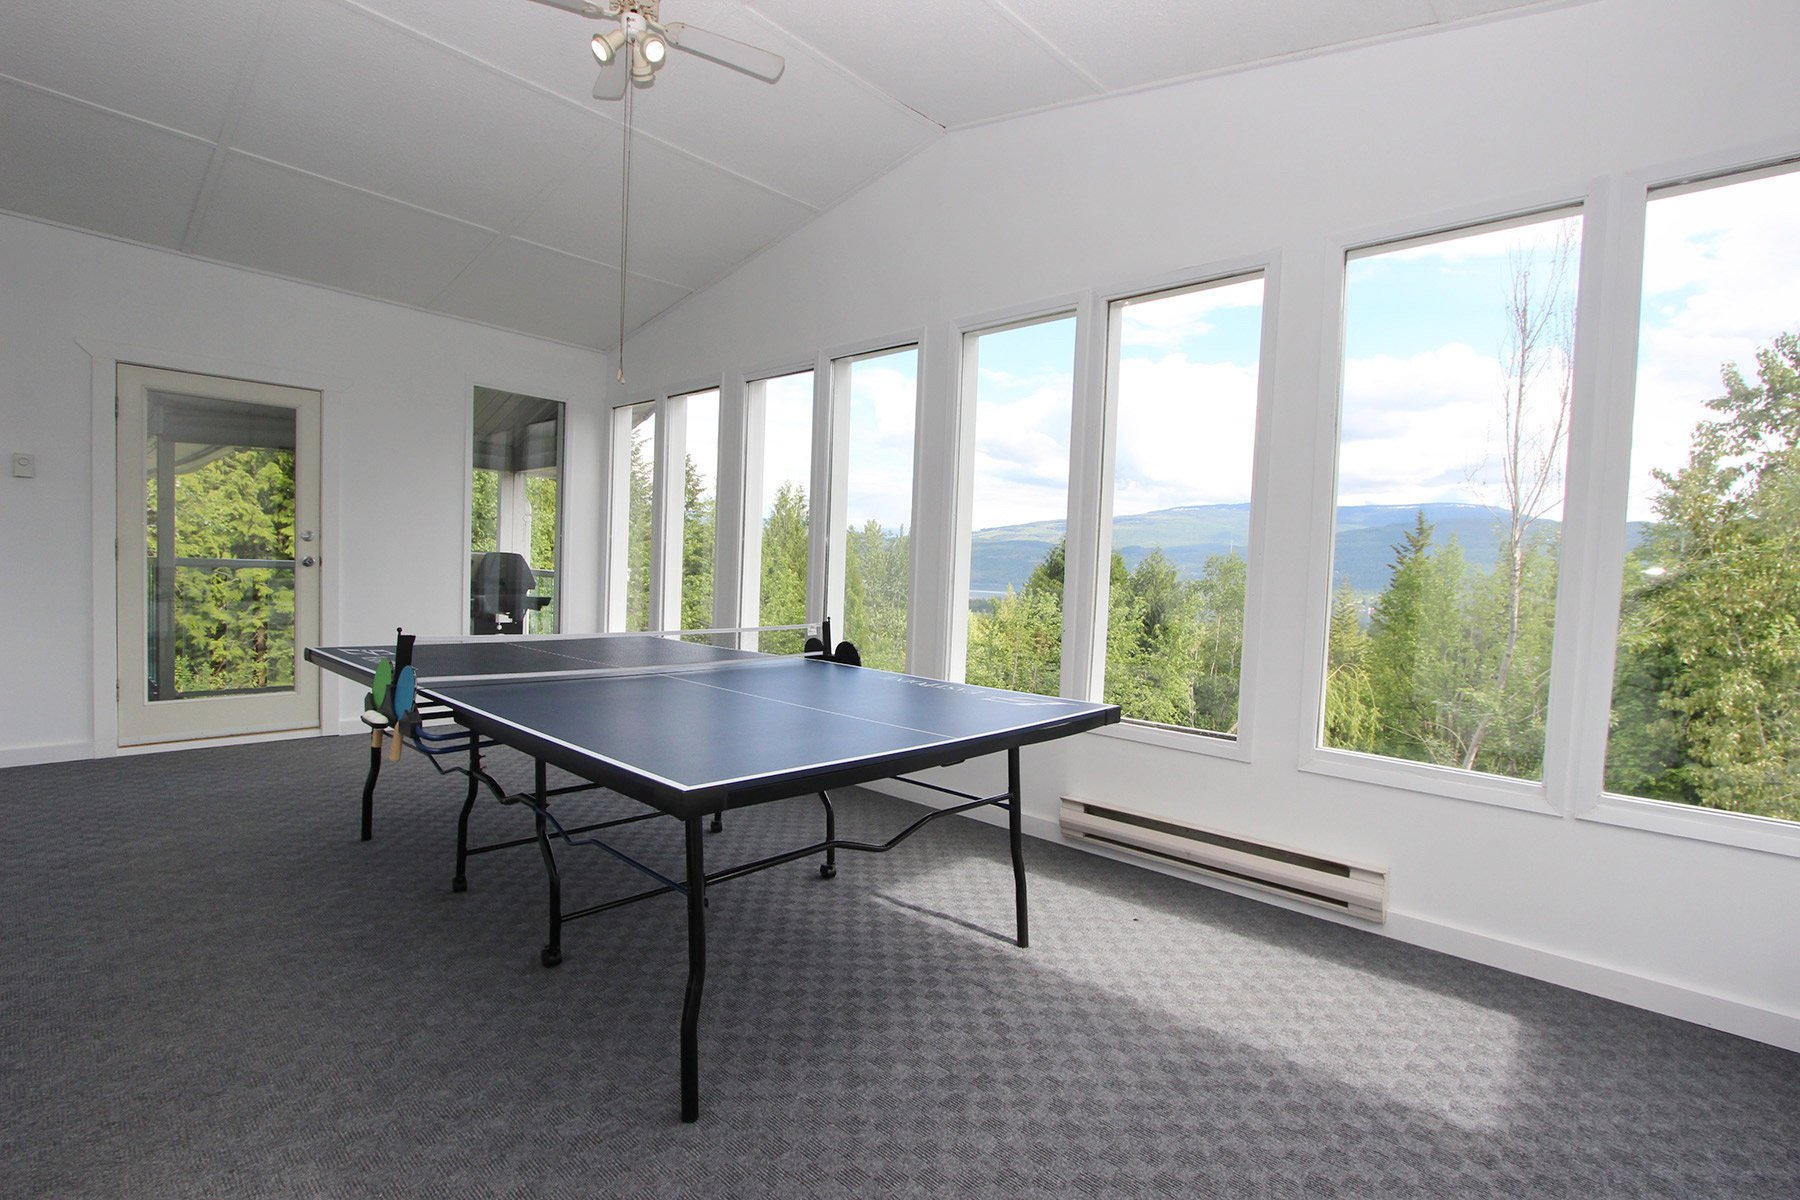 Photo 49: Photos: 6831 Magna Bay Drive in Magna Bay: House with Acreage for sale : MLS®# 10205520